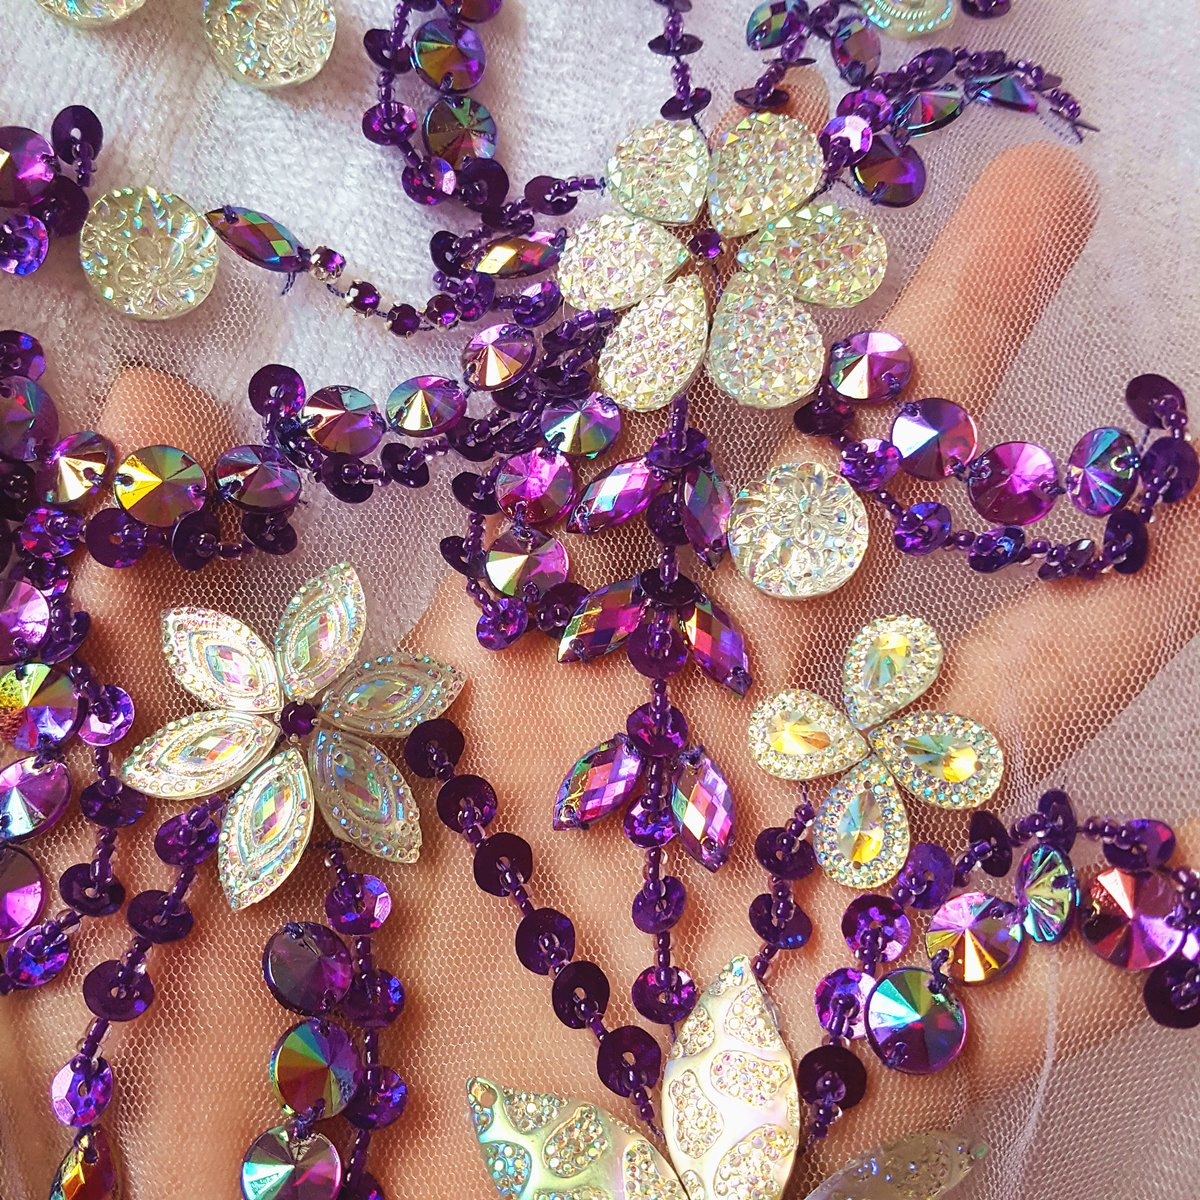 Noble Pure Handmade Beaded Crystal AB Color patches Sew on Rhinestones with Stones Sequins Beads Applique Designs Patches Sewing for DIY Wedding Dress Trim 30x60cm AB